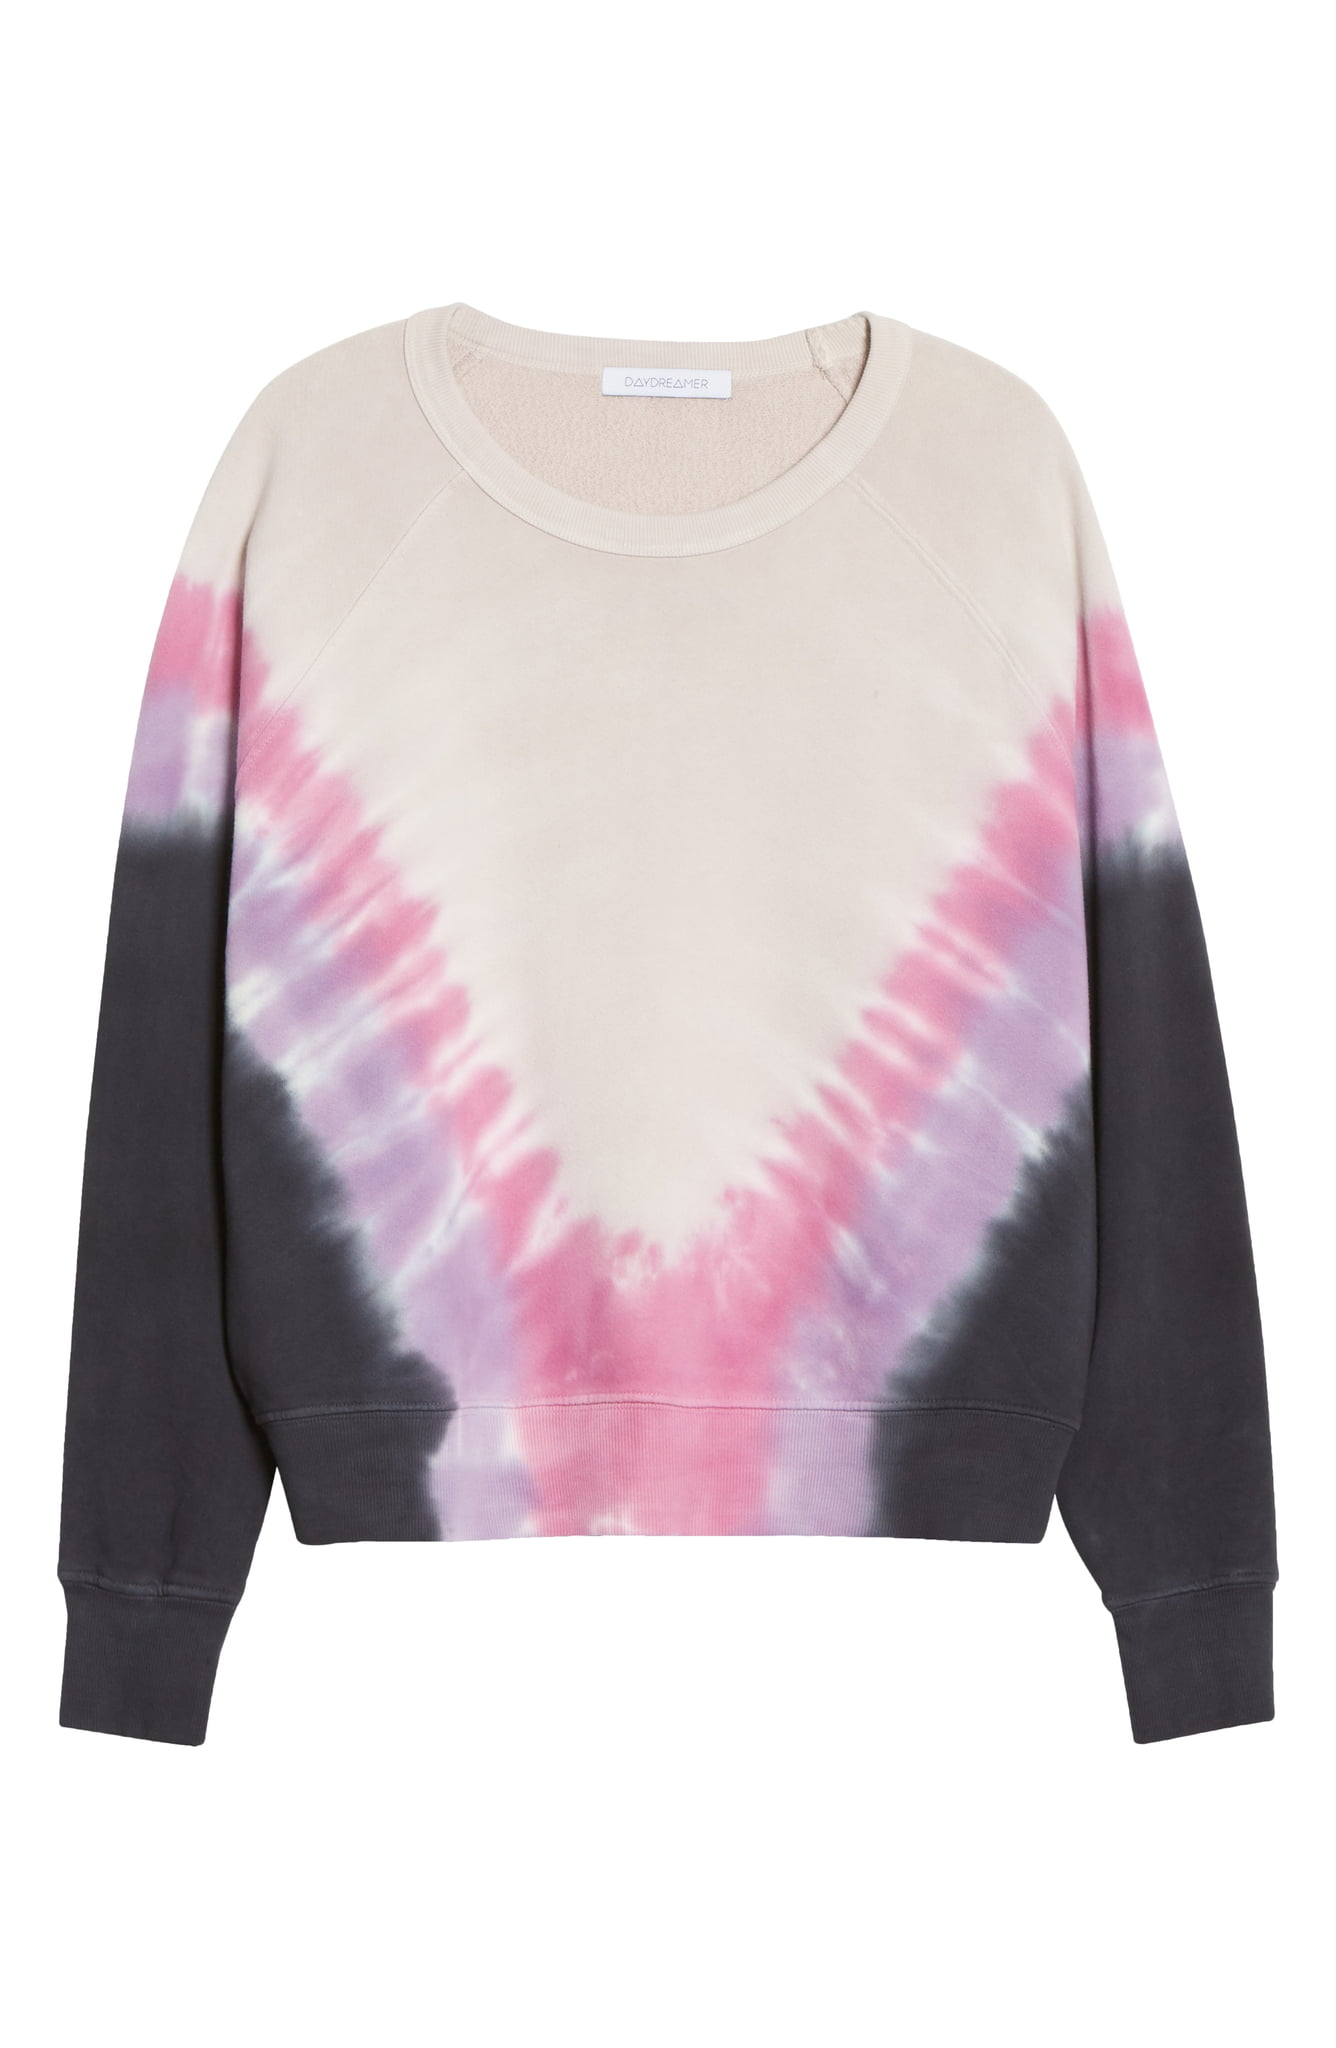 "Since 2020 is alllll about staying home - how cozy is this{&nbsp;}<a  href=""https://www.nordstrom.com/s/daydreamer-tie-dye-long-sleeve-crop-t-shirt/5673236?origin=keywordsearch-personalizedsort&breadcrumb=Home%2FAll%20Results%2FWomen%27s%20Clothing&color=mint%2F%20denim"" target=""_blank"" title=""https://www.nordstrom.com/s/daydreamer-tie-dye-long-sleeve-crop-t-shirt/5673236?origin=keywordsearch-personalizedsort&breadcrumb=Home%2FAll%20Results%2FWomen%27s%20Clothing&color=mint%2F%20denim"">Daydreamer Flying V Varsity Crew Sweatshirt</a>? $49.90 (after sale $87). (Image: Nordstrom)"